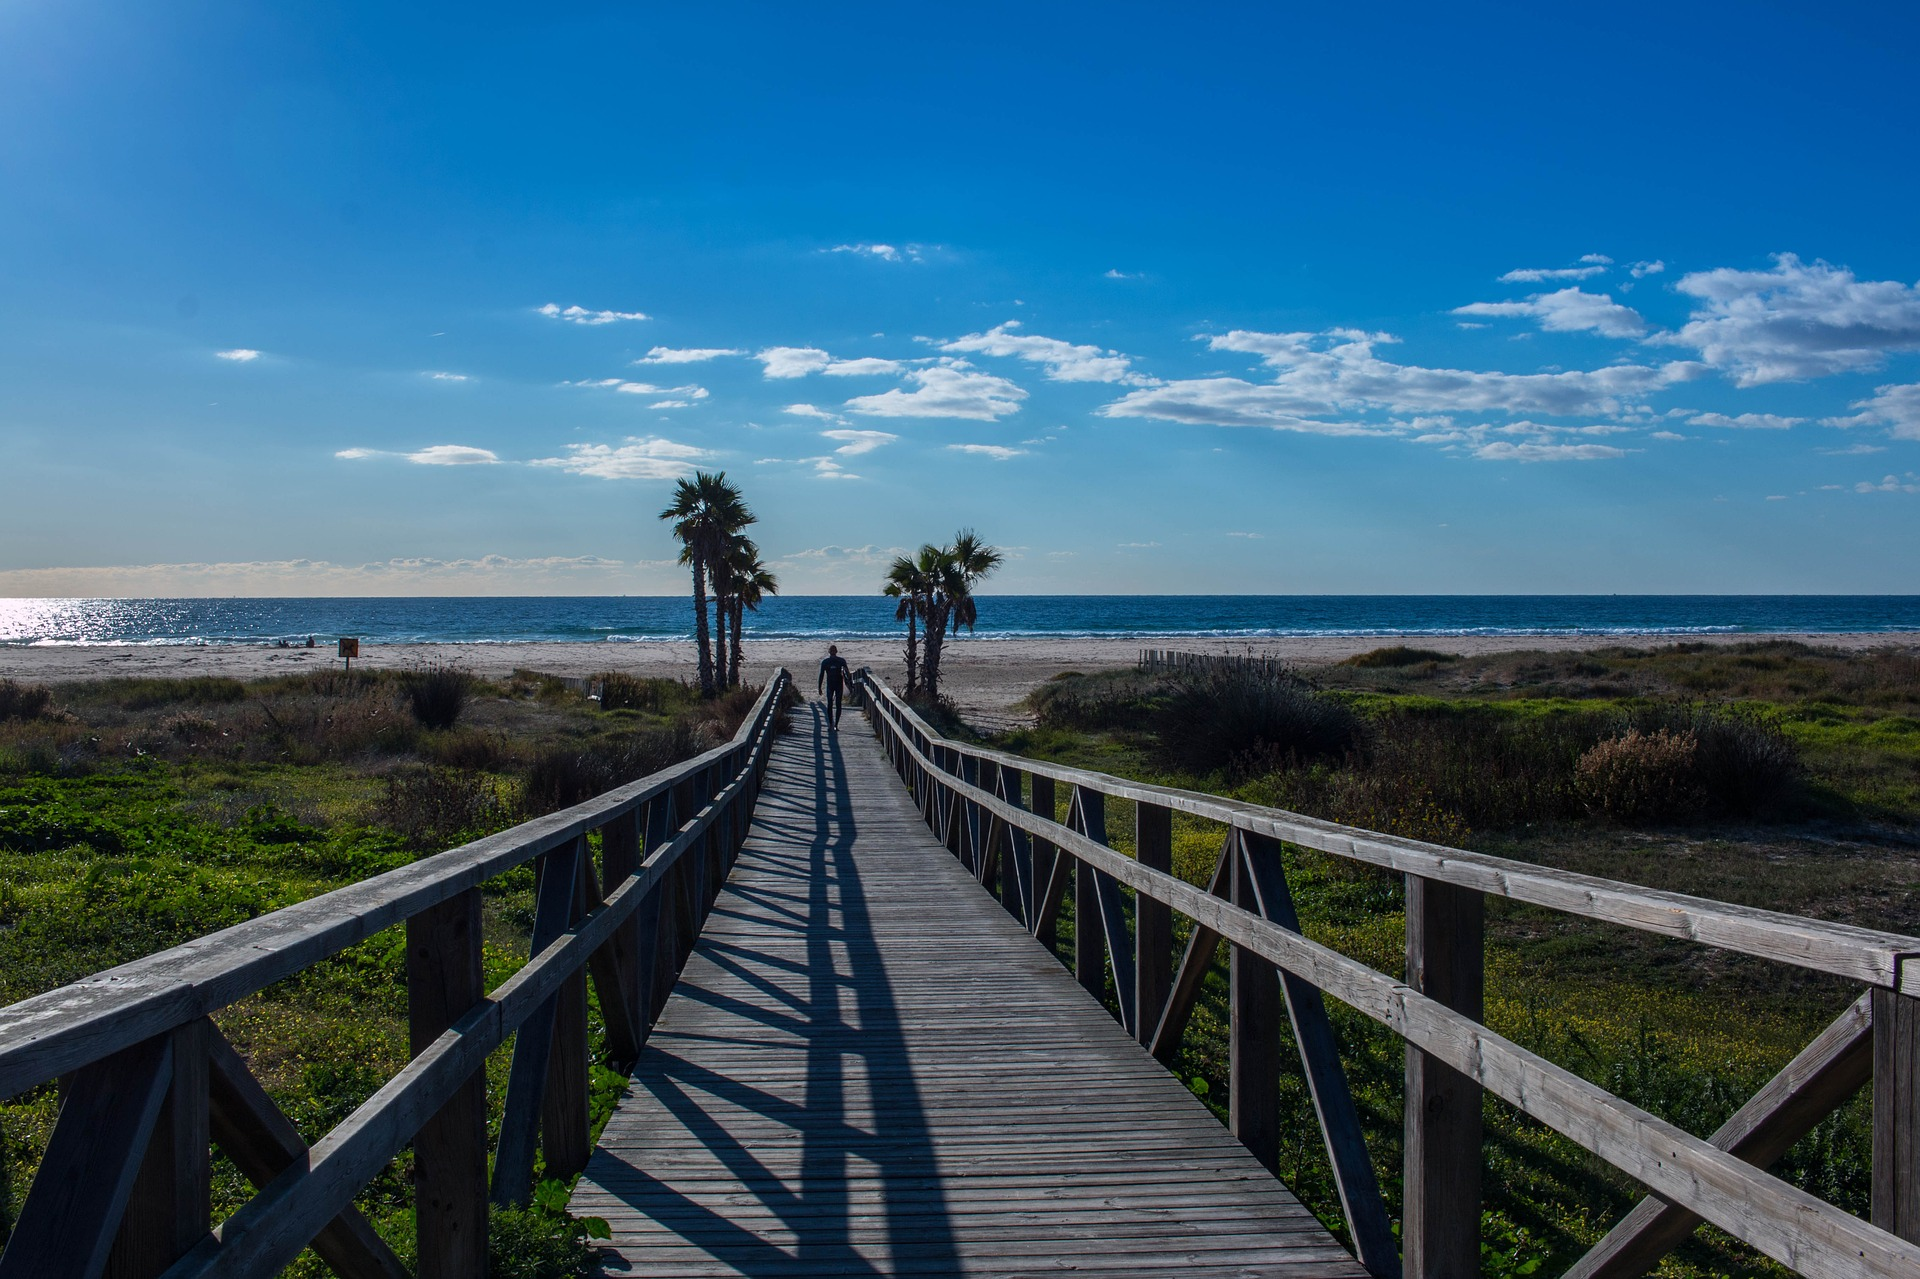 Cadizfornia; The Secret Destination of El Palmar in Cádiz